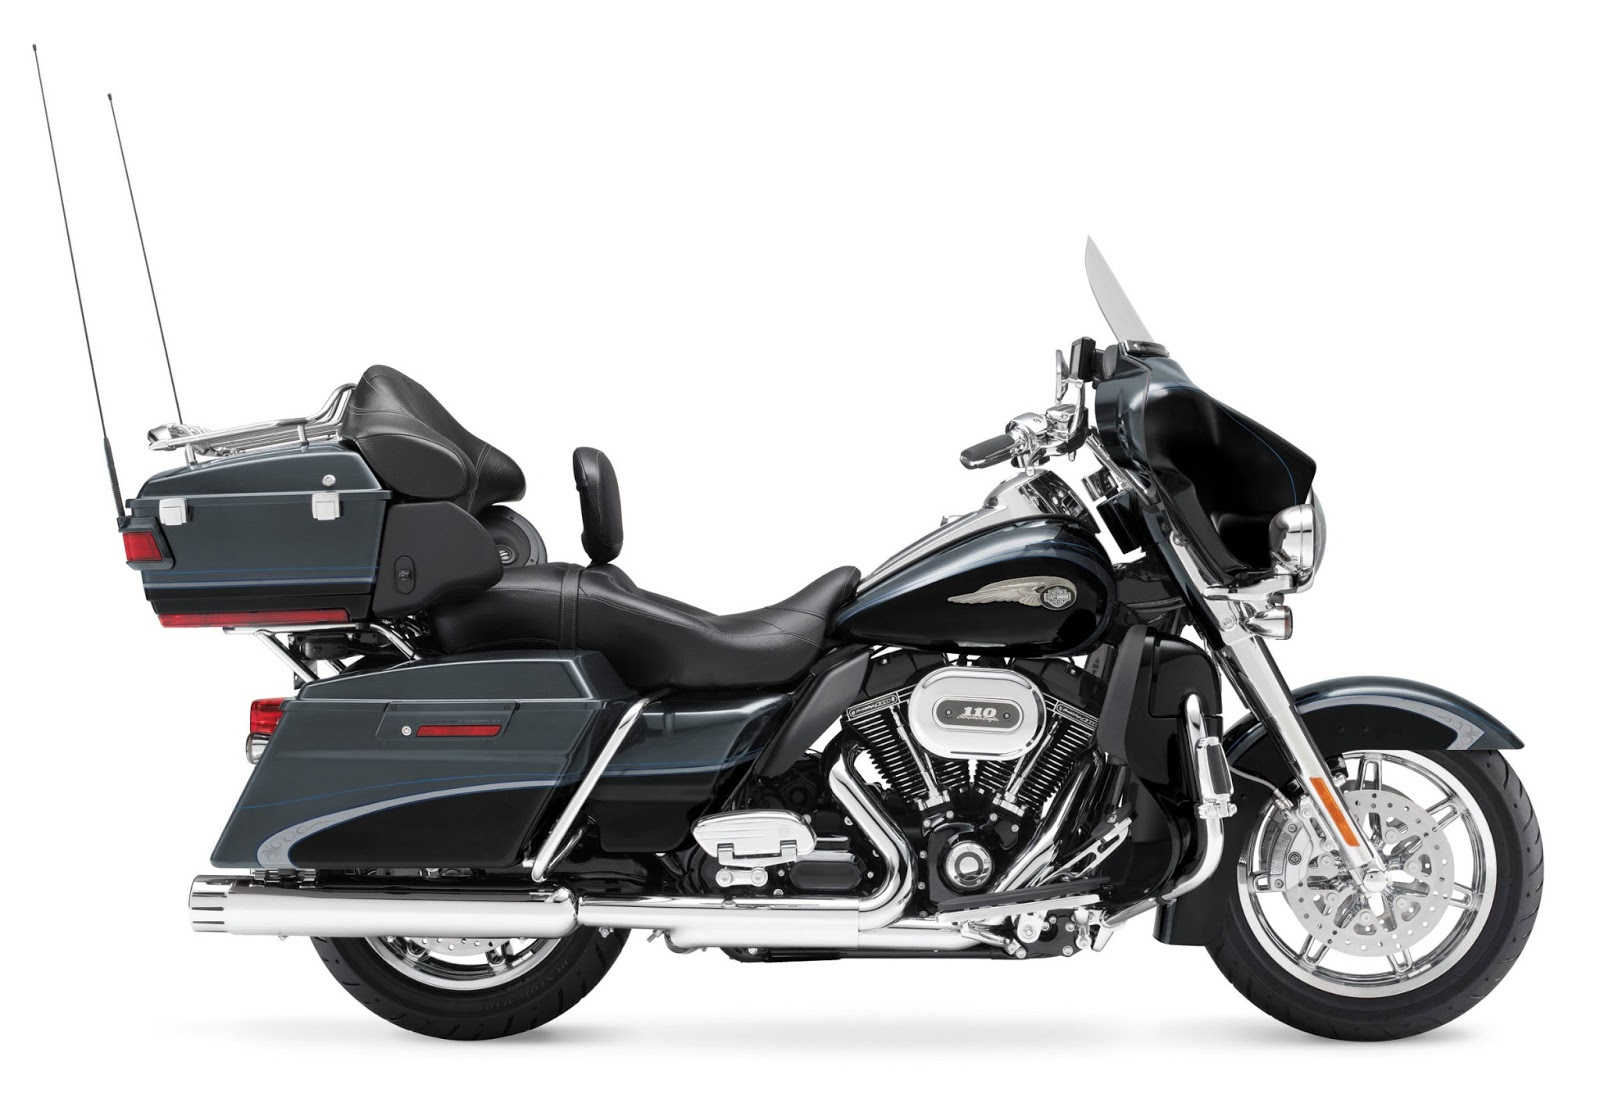 2013 Harley Davidson FLHTCUSE8 CVO Ultra Classic Electra Glide